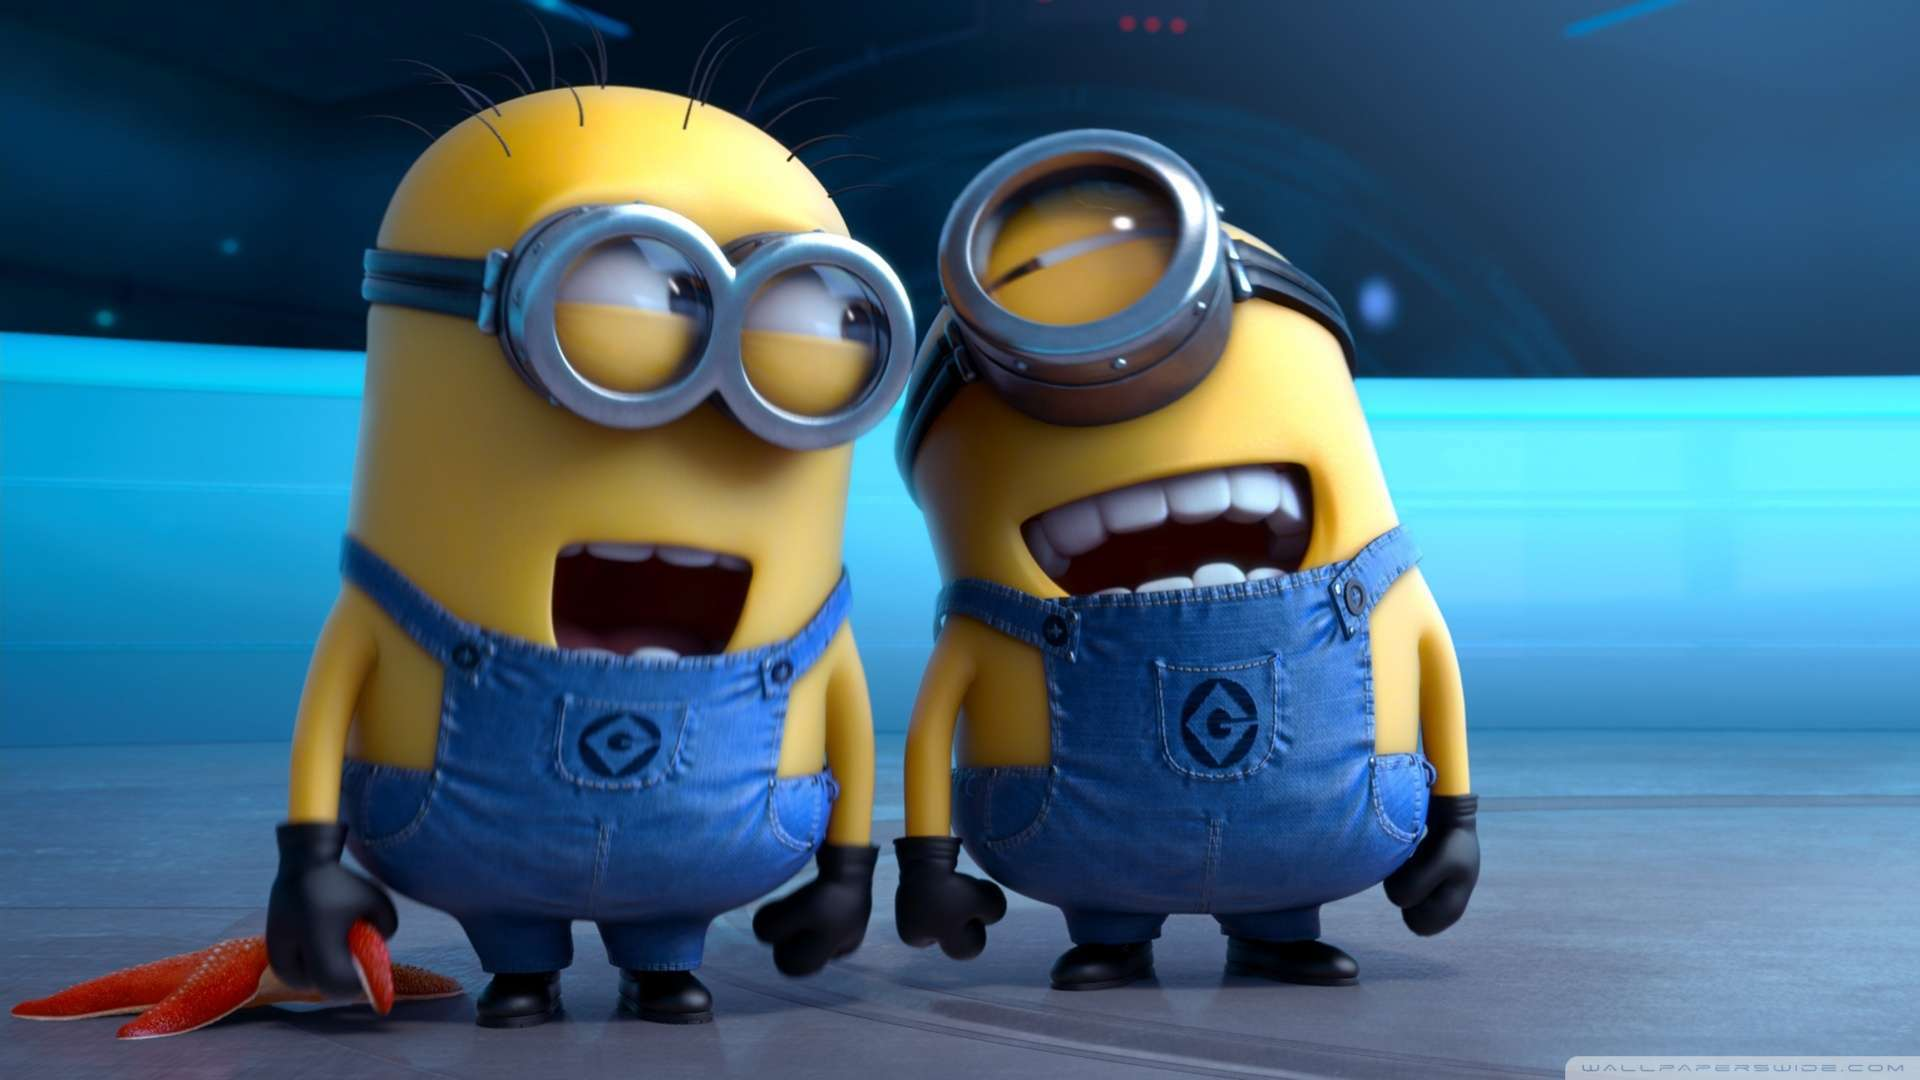 HD-1080P-Me-Laughing-Minions-1080p-HD-at-1920-x-1080-Resolution-wallpaper-wpc5805801